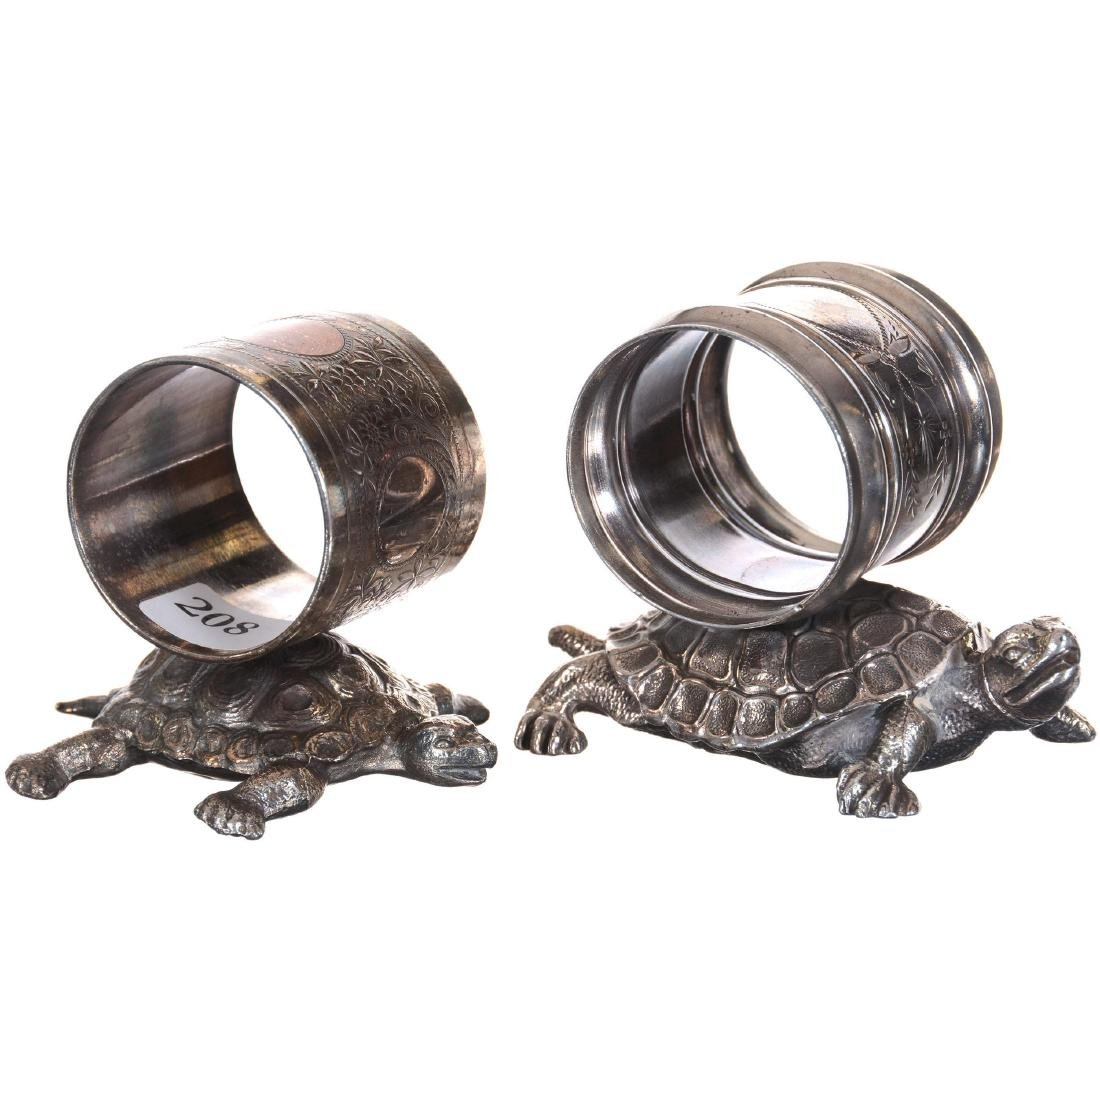 Two Figural Turtle Silver-plate Napkin Rings